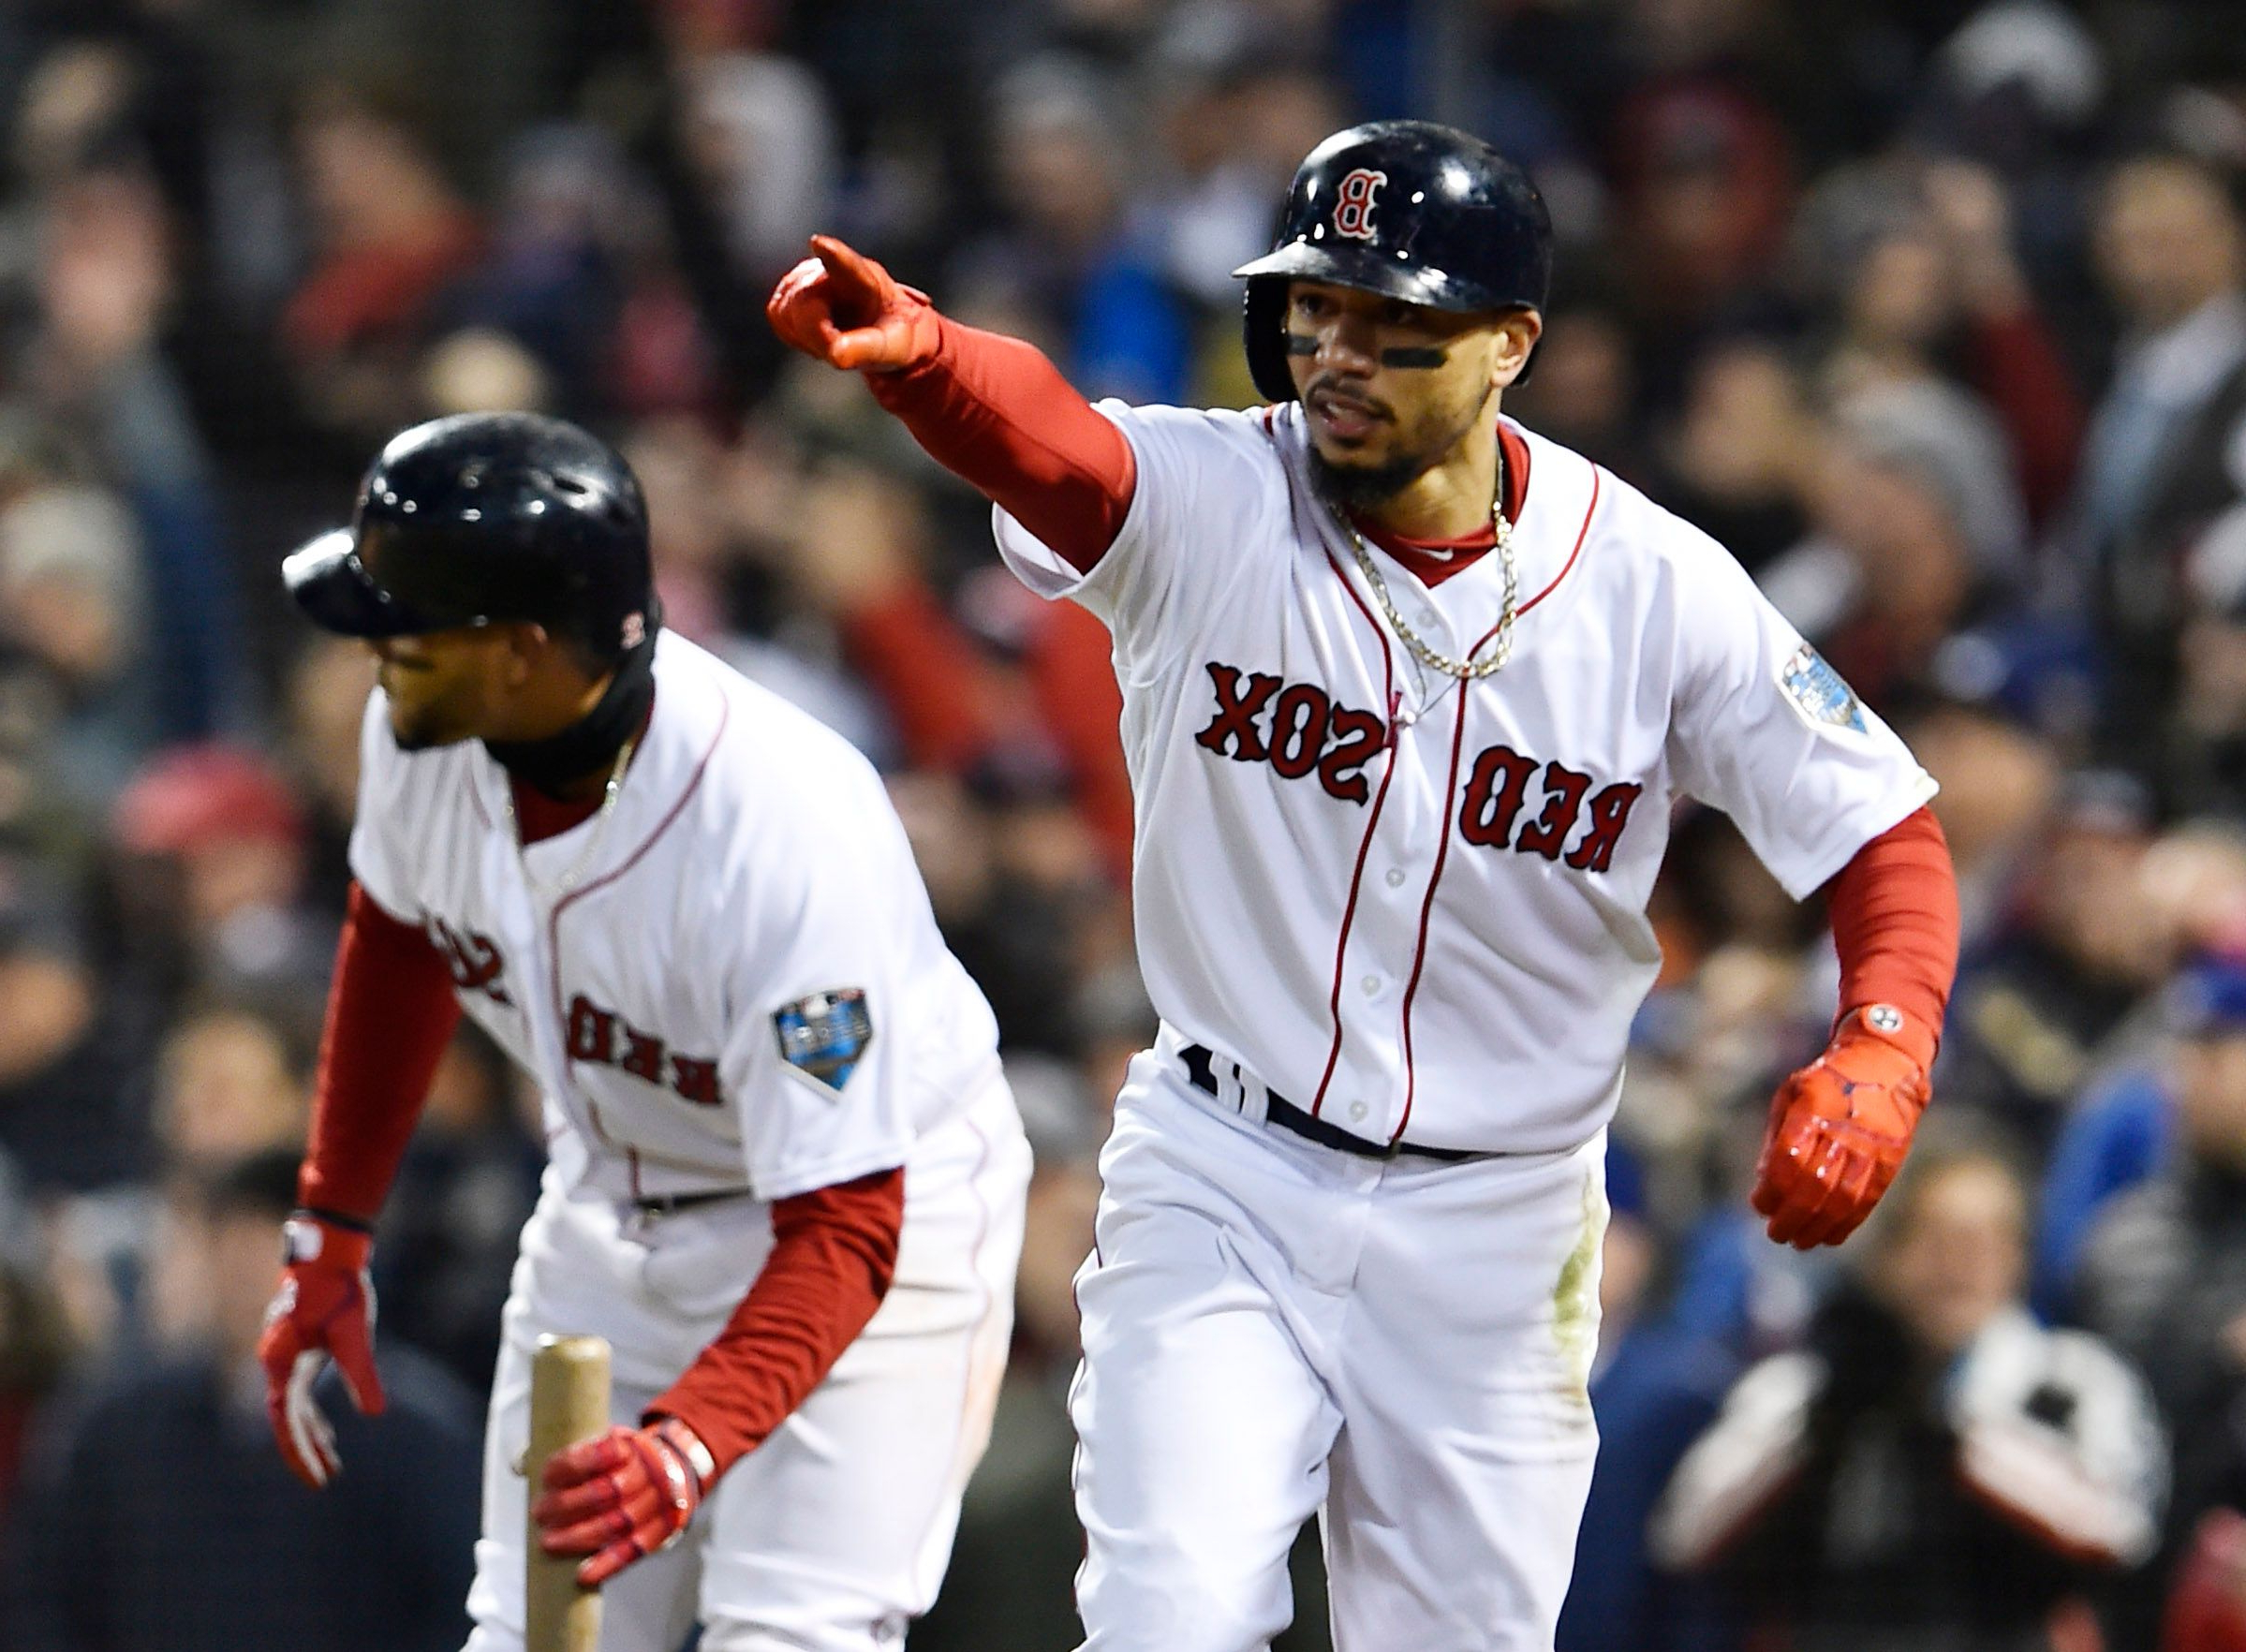 c27b1a112f5 Red Sox right fielder Mookie Betts caps historic season with AL Most  Valuable Player award